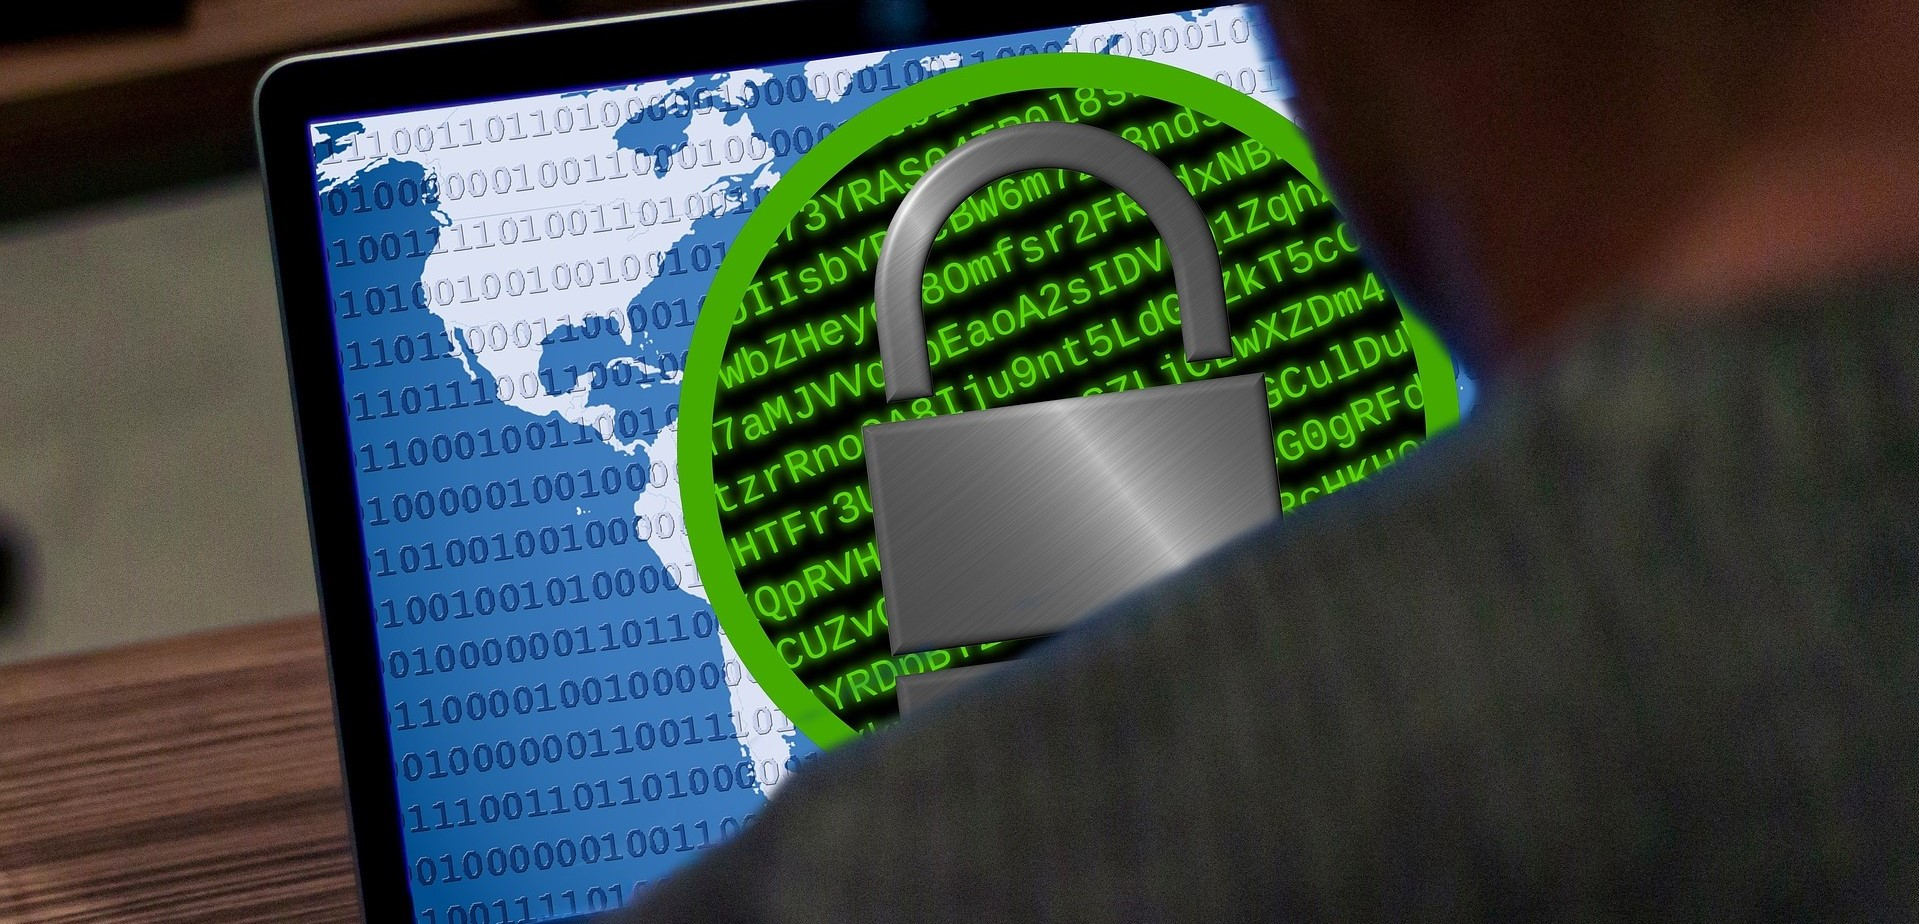 Ransomware Ransom Ware Cyber Crime Hacking Malware